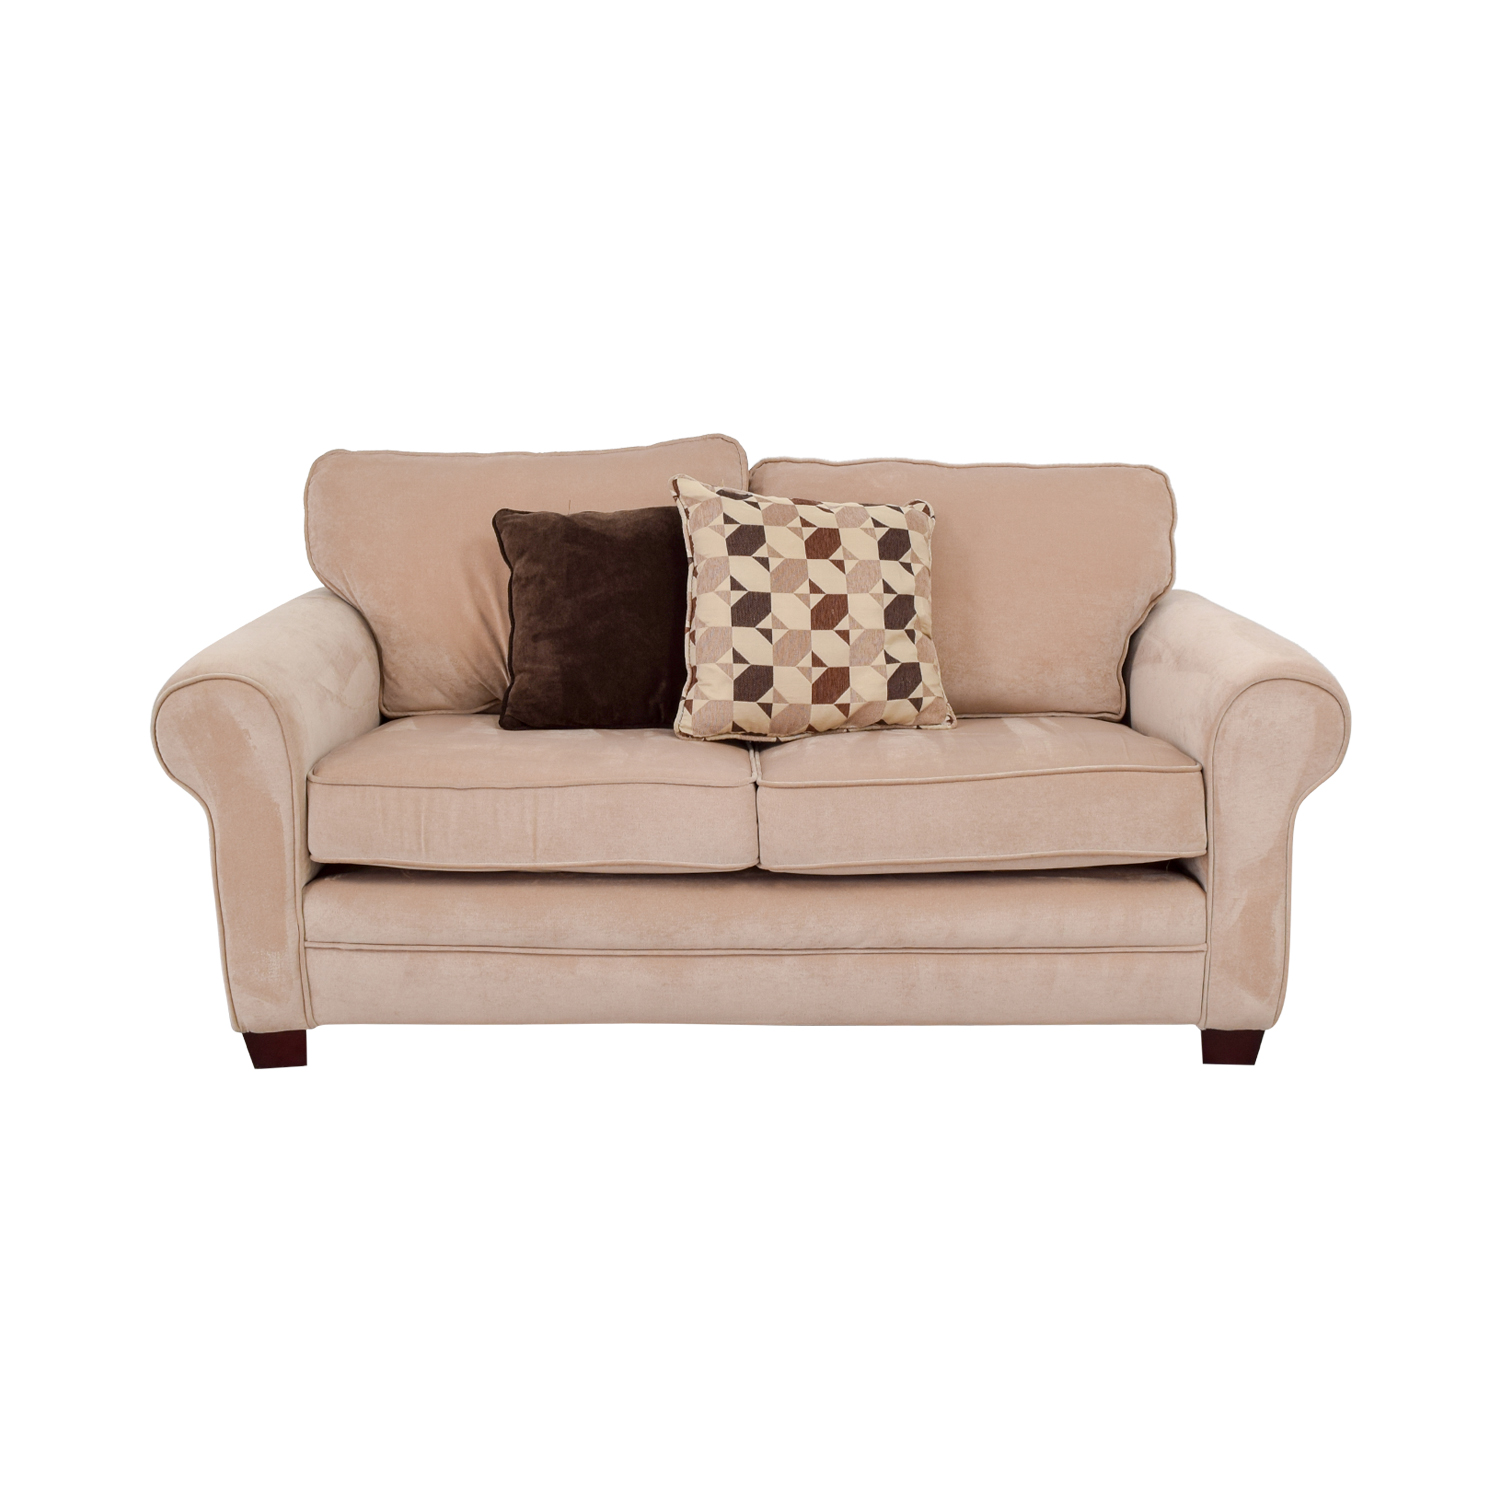 used sofa modern design sectional sofas s shaped cr thesofa